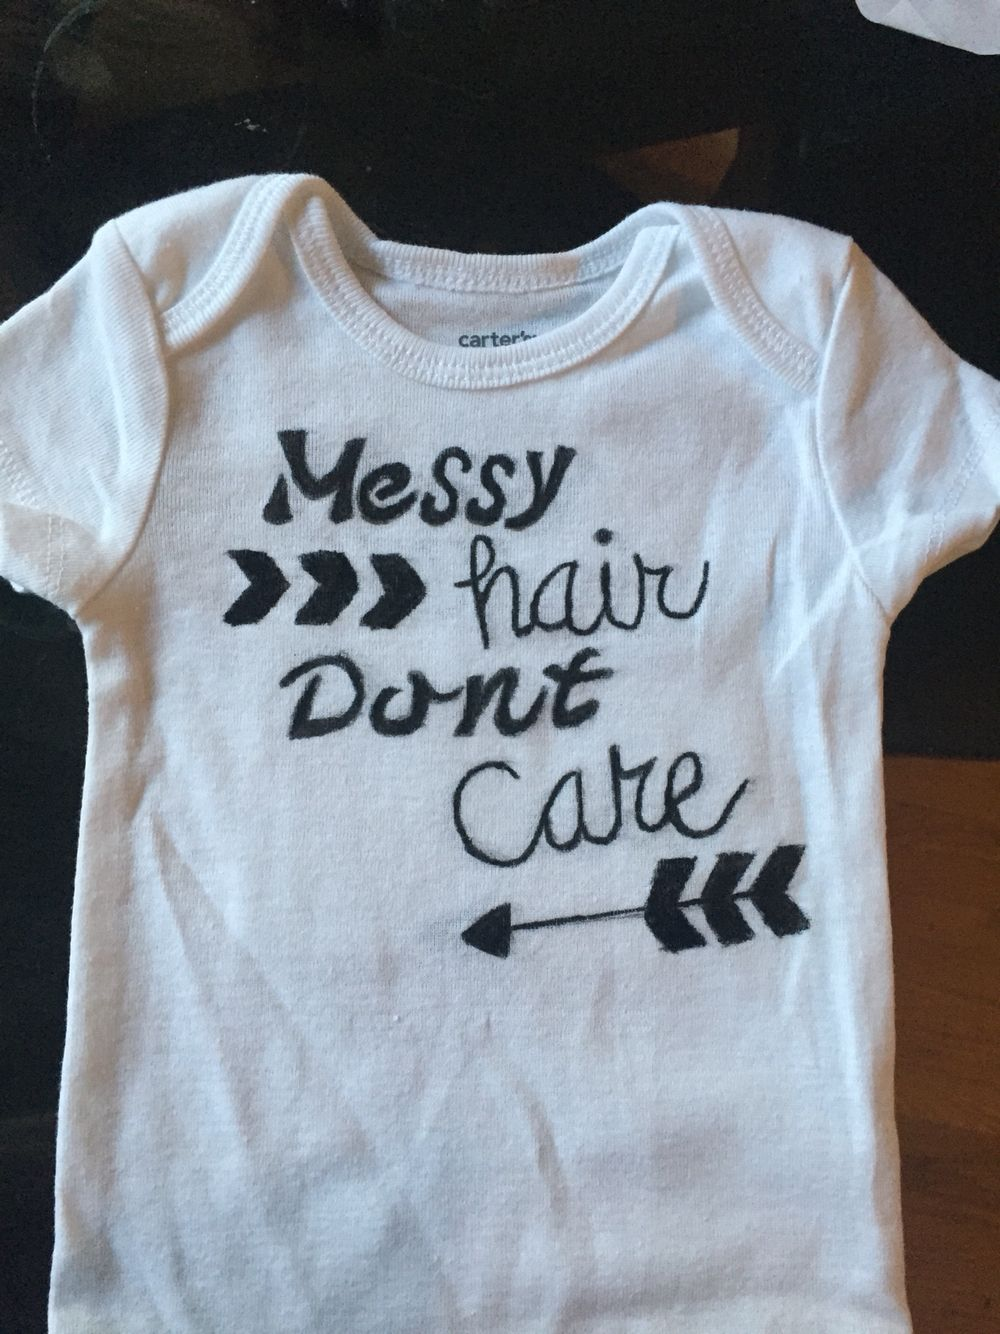 2c0fee5575daf1 Just another onesie I made using fabric markers …